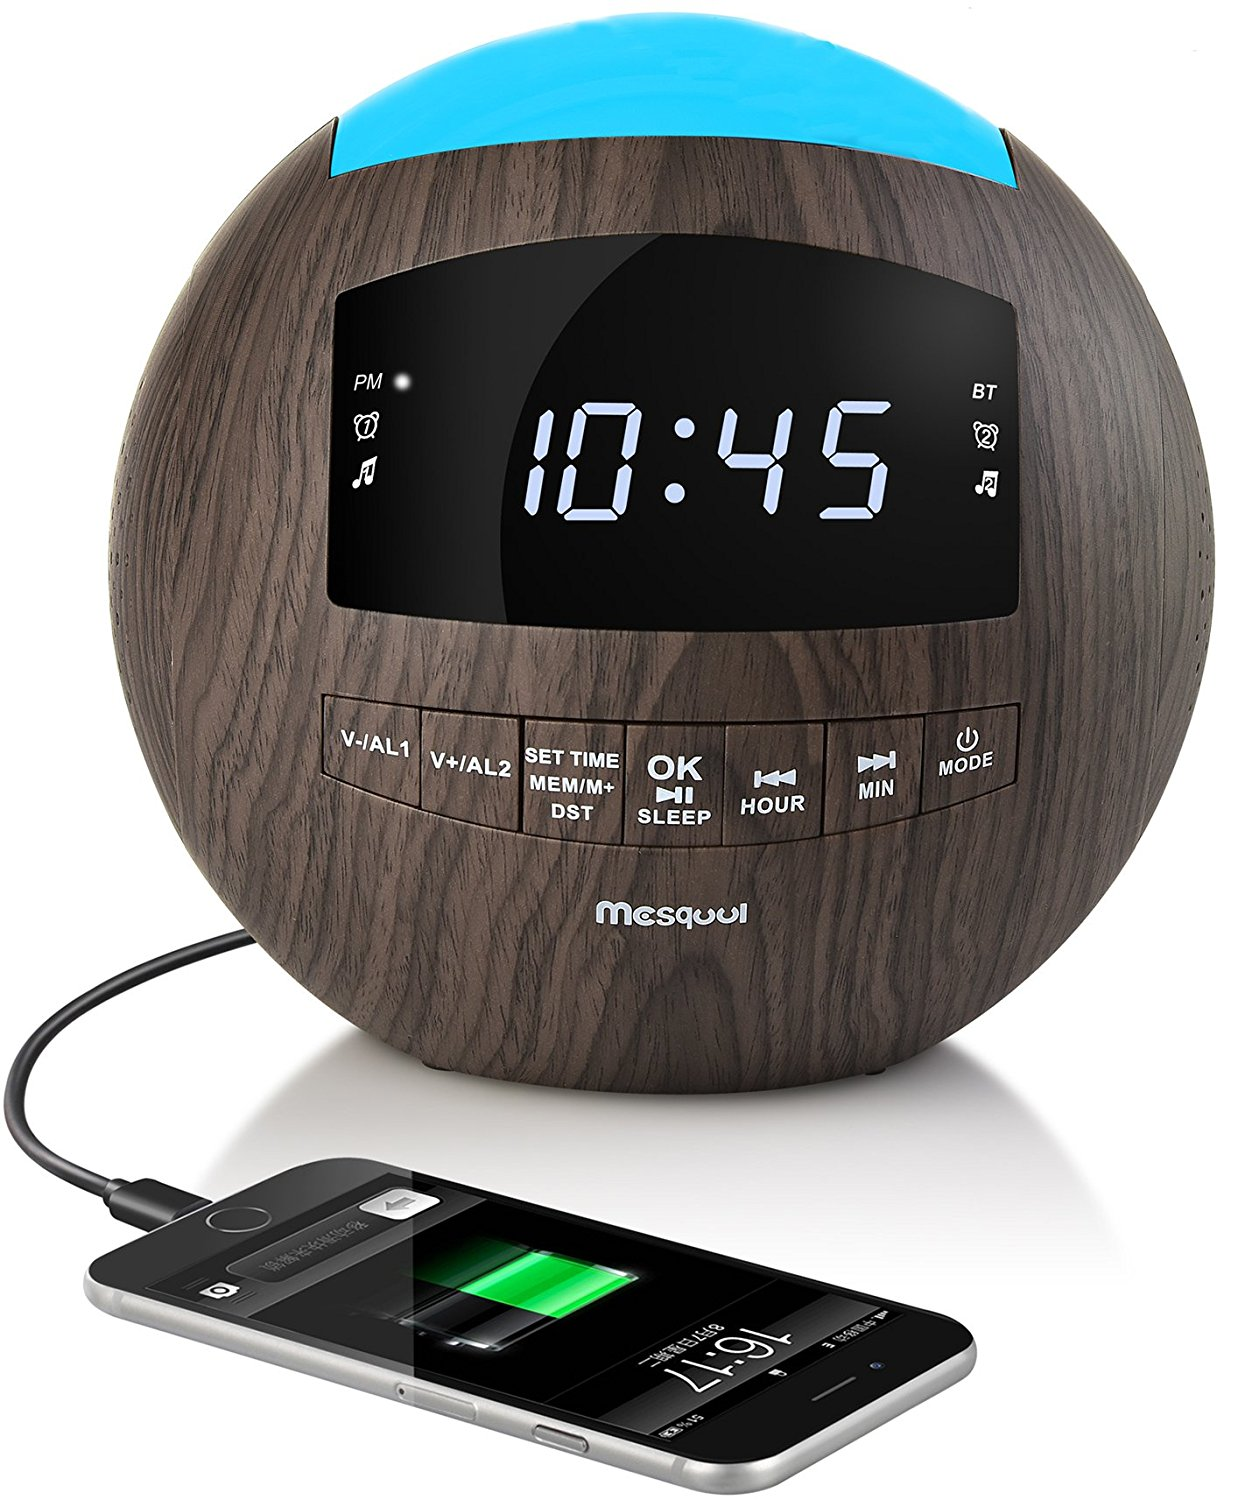 Mesqool Wooden Dimmable Alarm Clock Radio, Bluetooth Speaker, AM/FM Radio, AUX-IN, Dual USB Charging Port, Multi-Color Night Light, Snooze, Sleep Timer